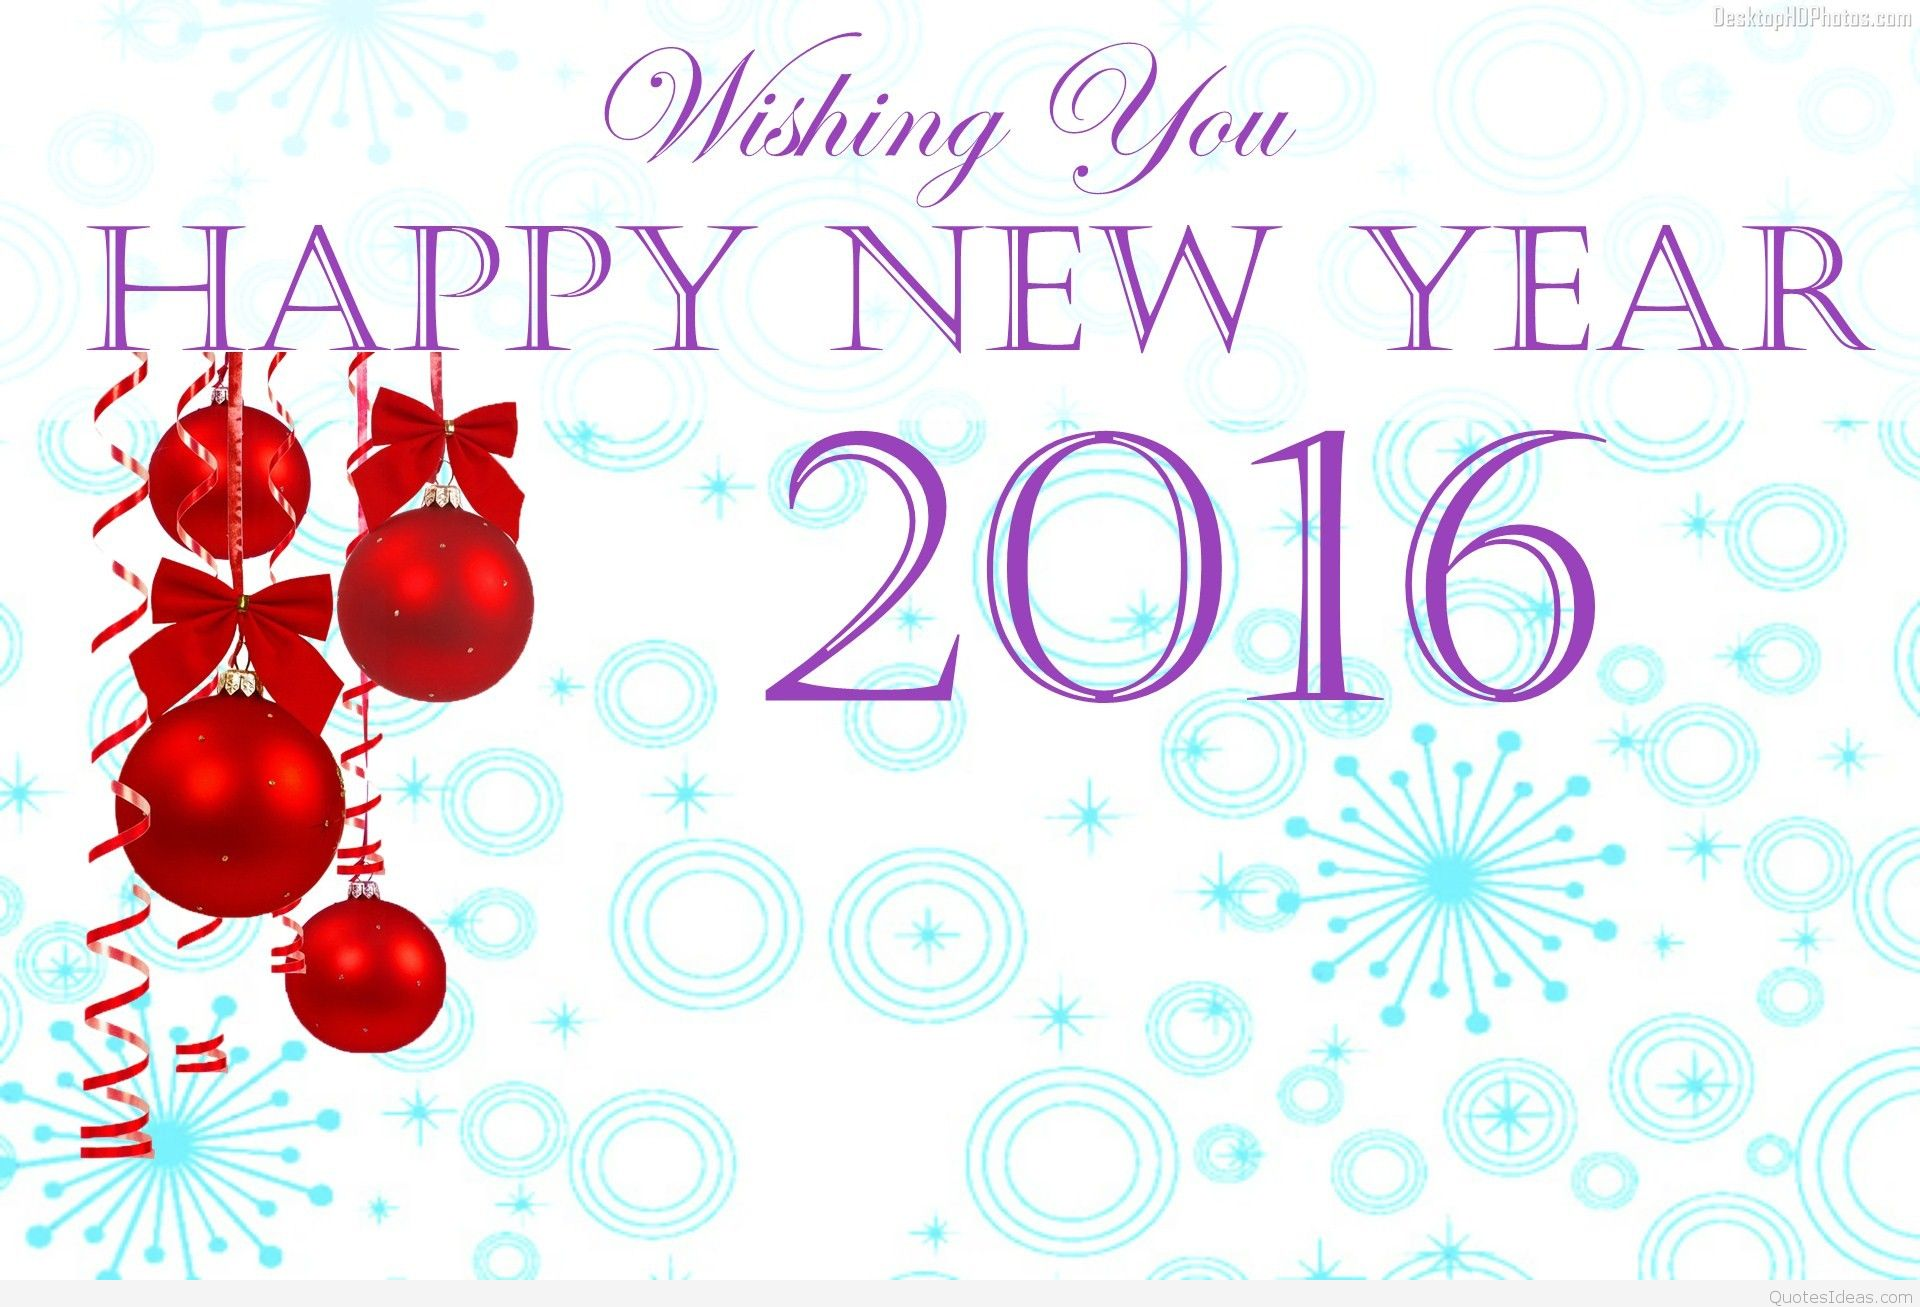 wishing you happy new year 2016